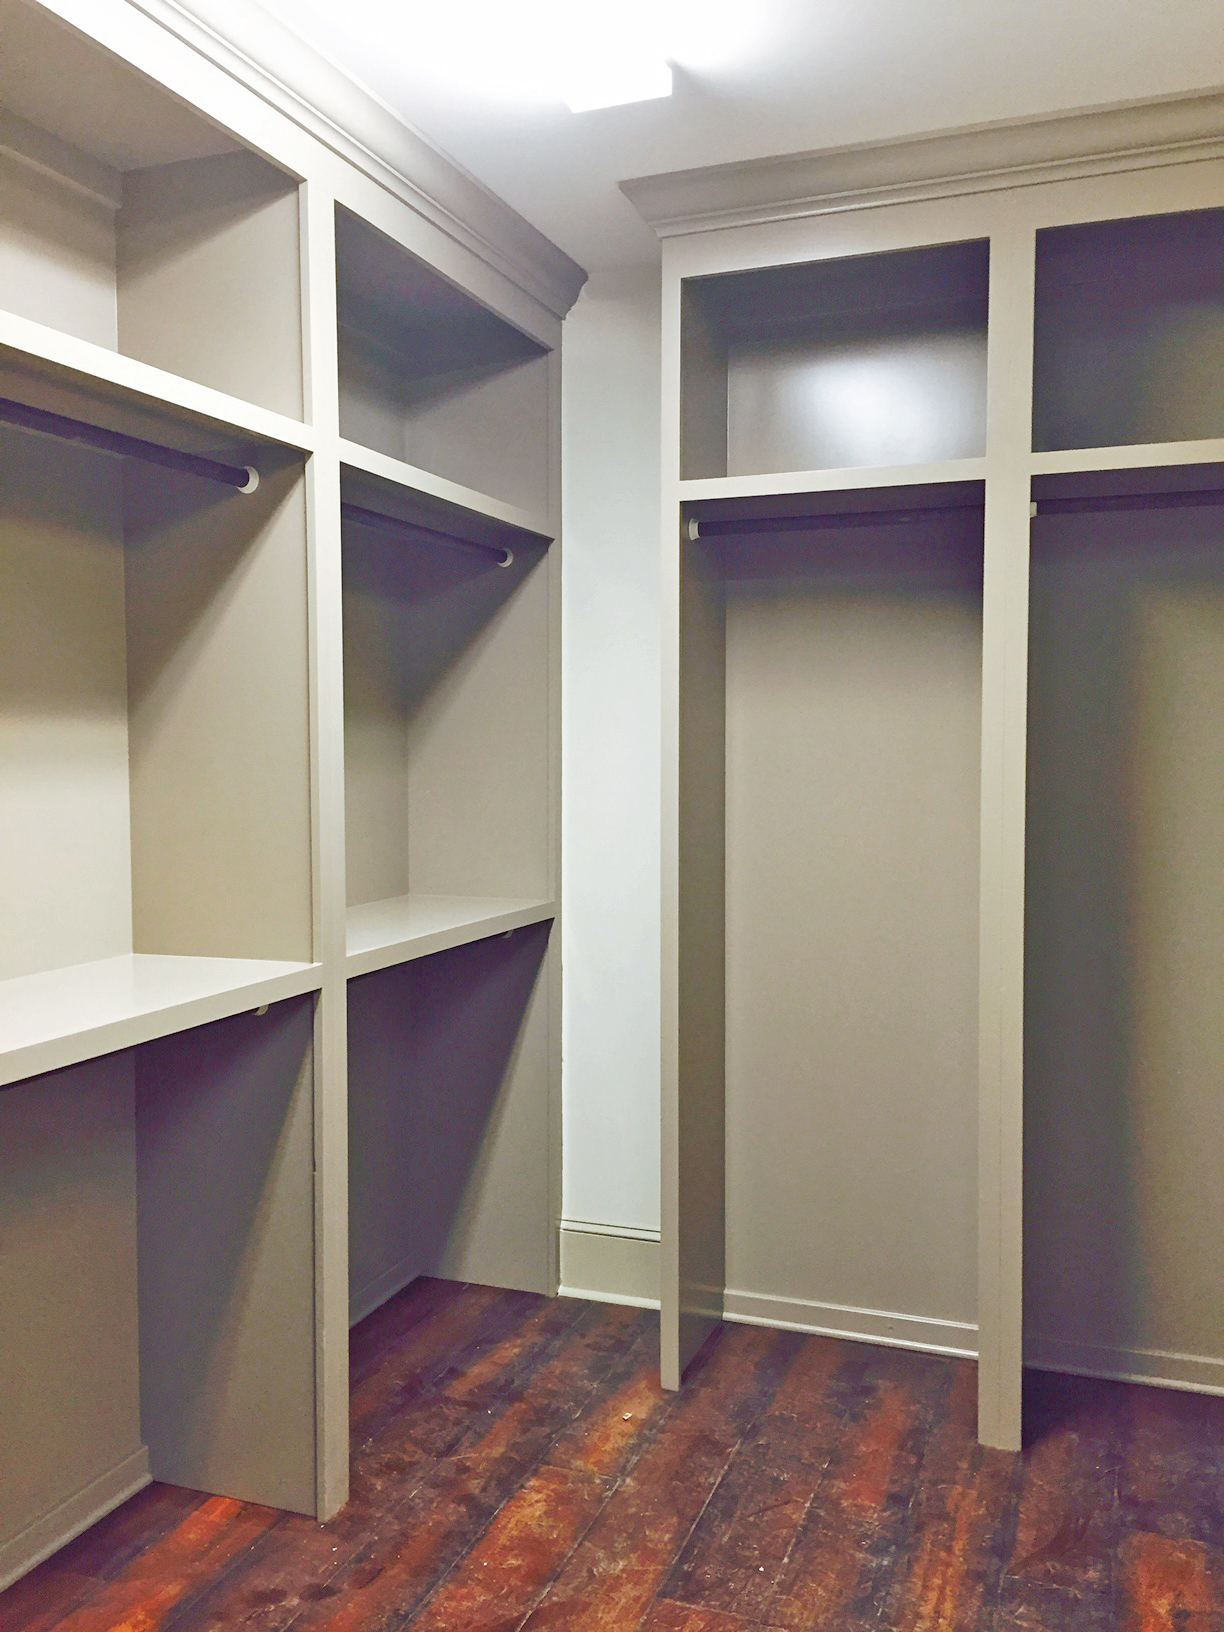 Walk-In Closet with Double Hang & Shelf Above, Long Hang & Shelf Above, and Crown